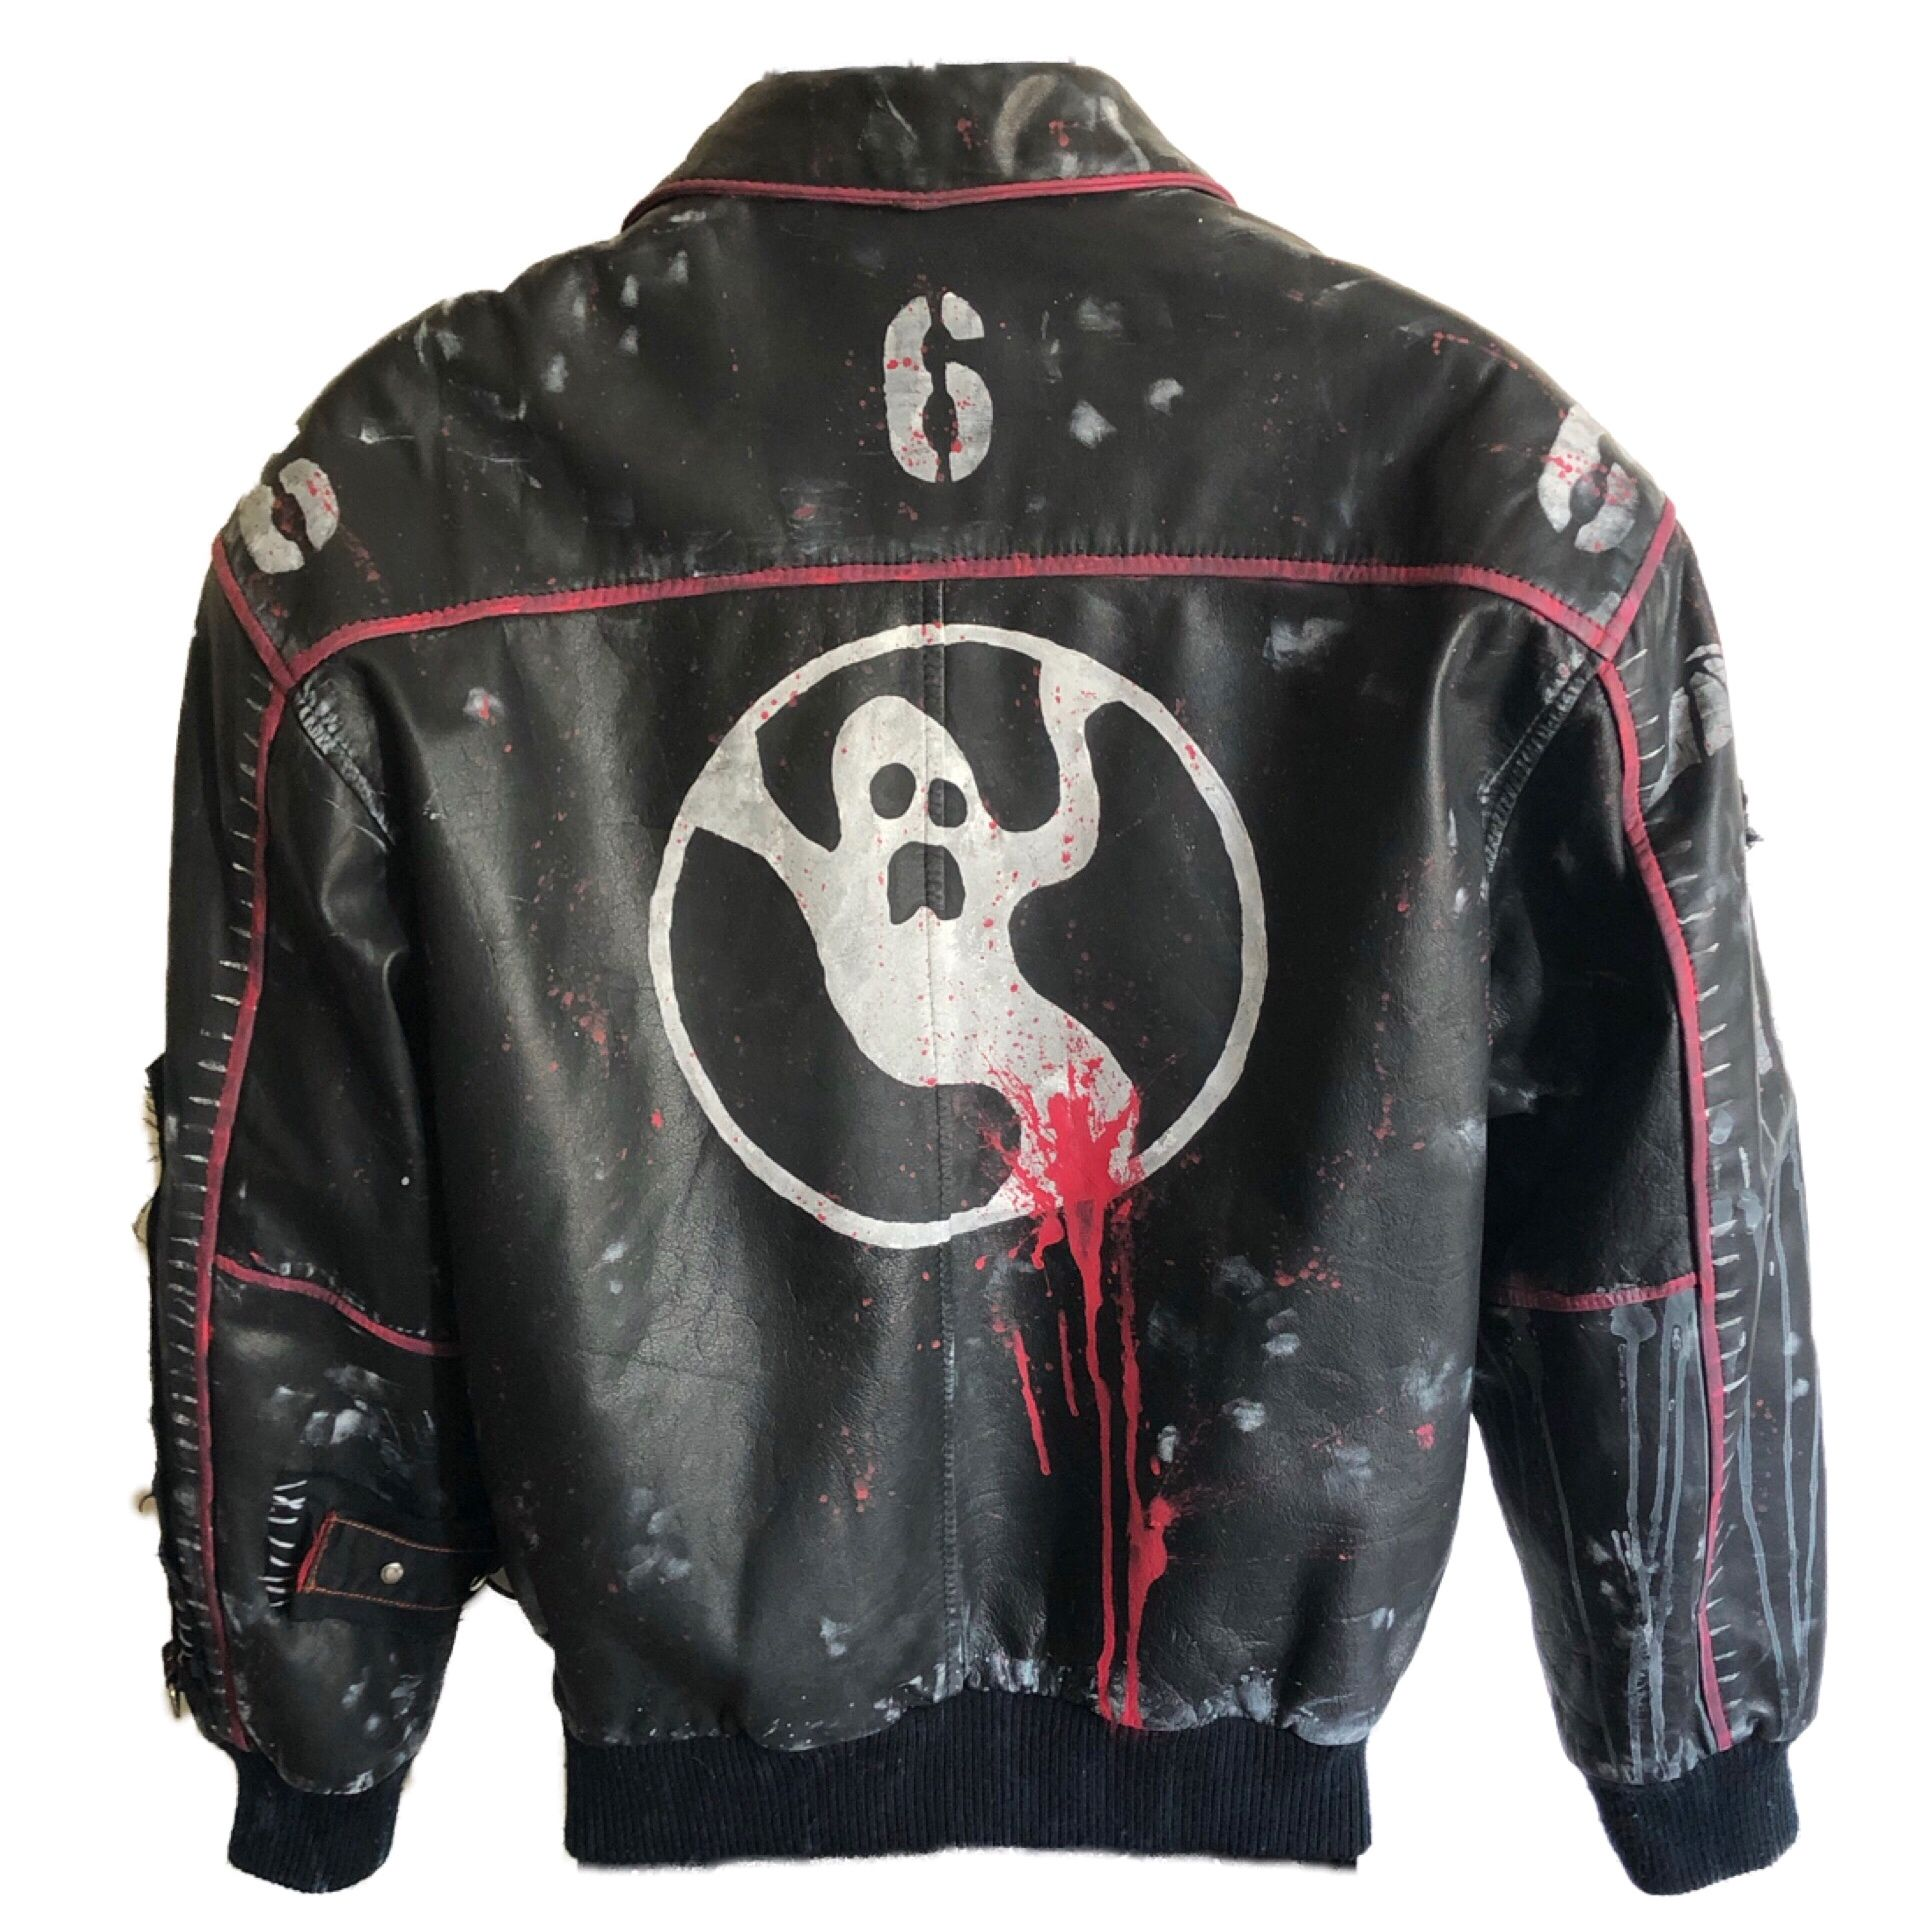 Bomber Ghost Jacket By Chad Cherry In 2021 Custom Clothes Horror Movie Clothing Jackets [ 1920 x 1920 Pixel ]